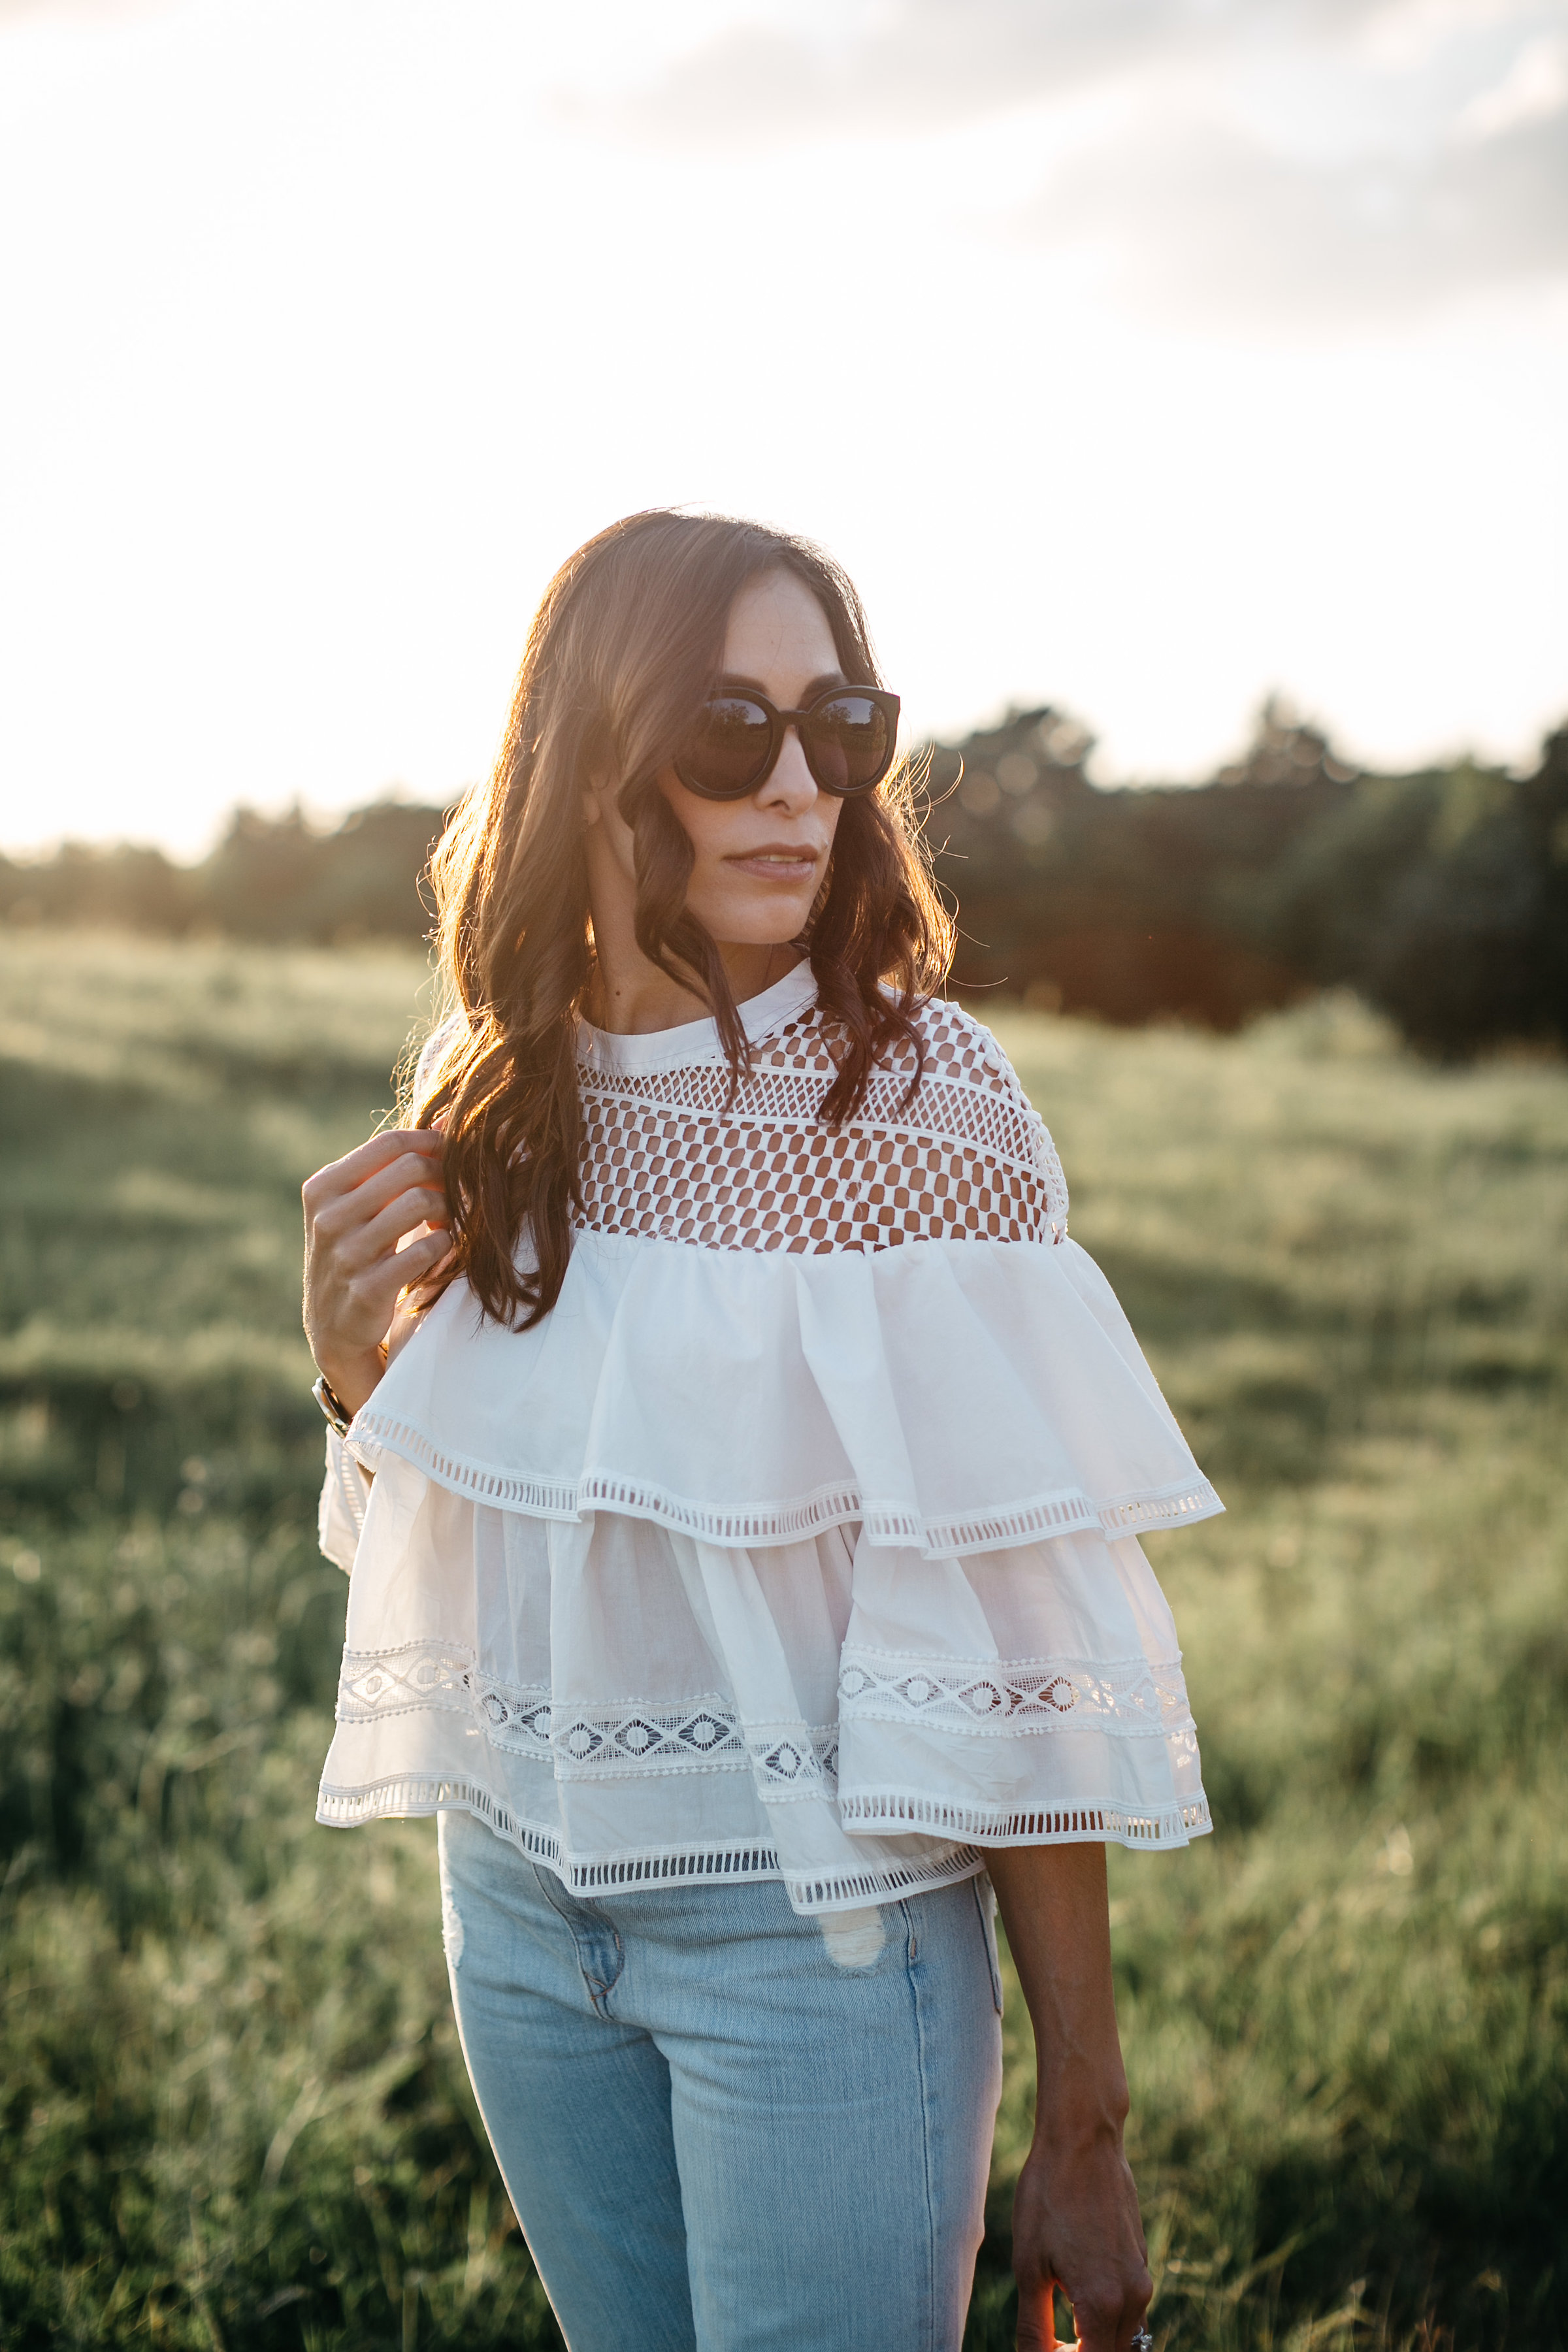 Tiered ruffle top from Chicwish worn by Amanda of A Glam Lifestyle blog